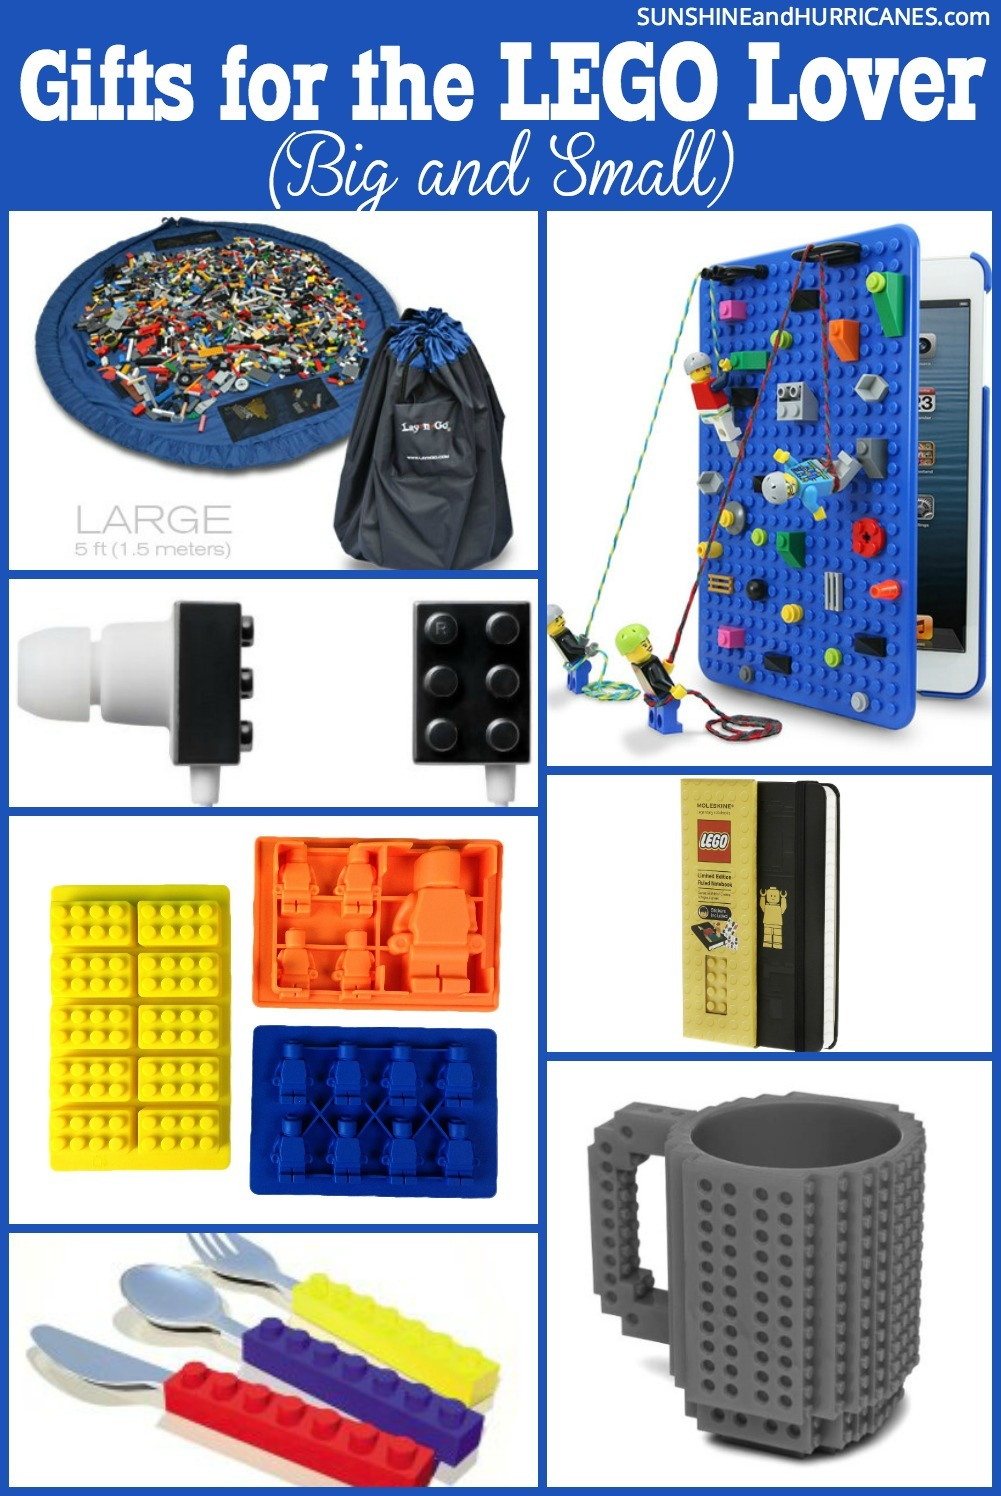 Lego Gifts for Lego Lovers - Big & Small